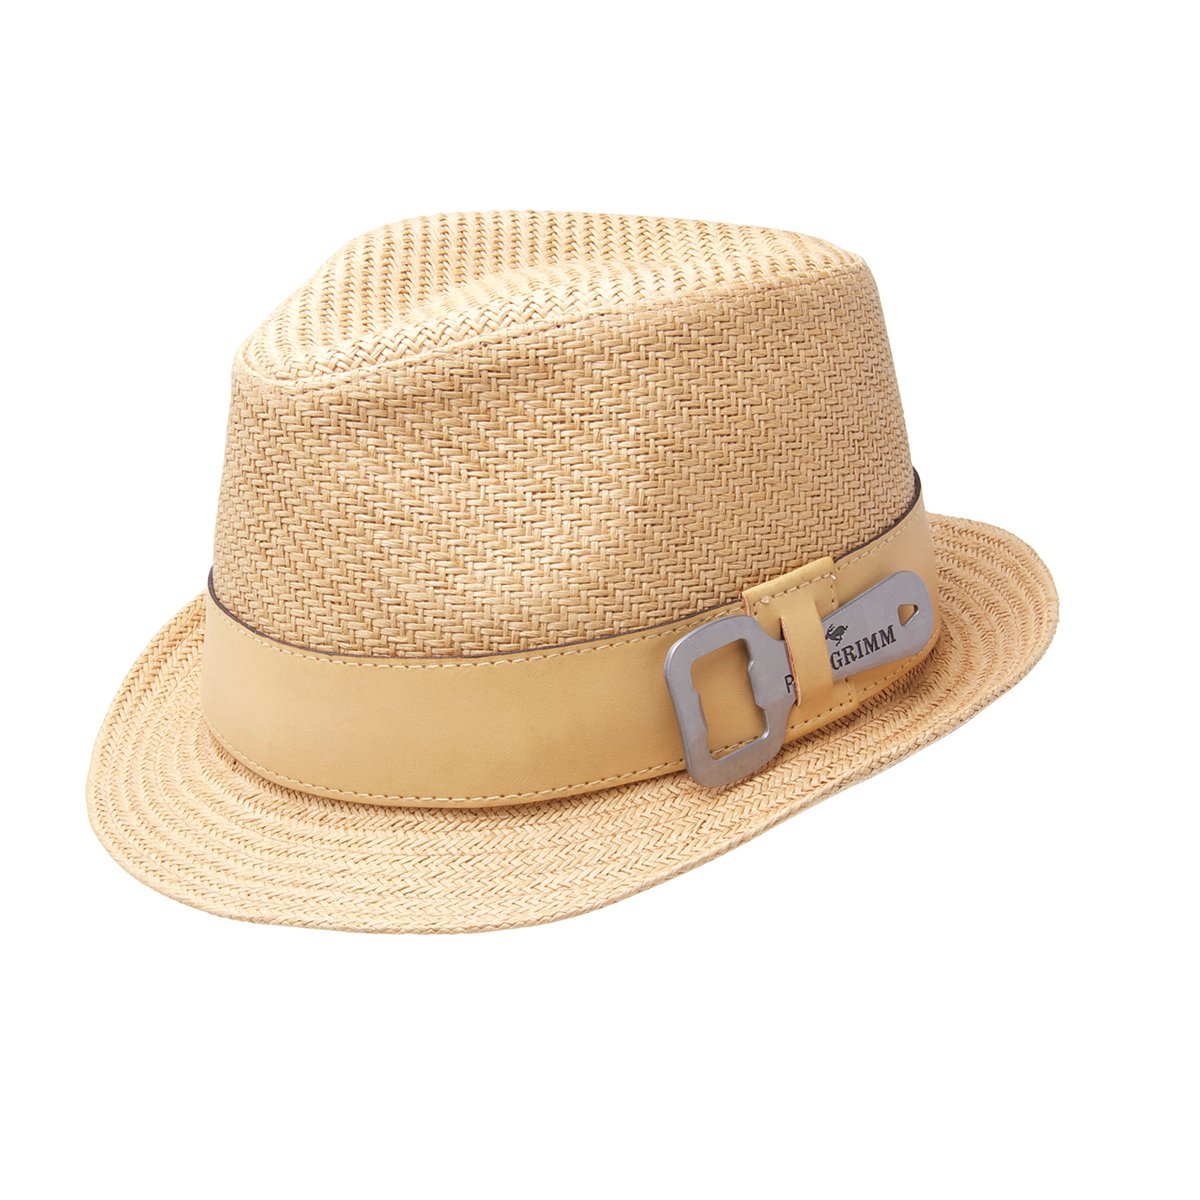 f49b71597e5 Amazon.com: Peter Grimm Luke Toyo Straw Fedora Bottle Opener Hat - Black:  Clothing